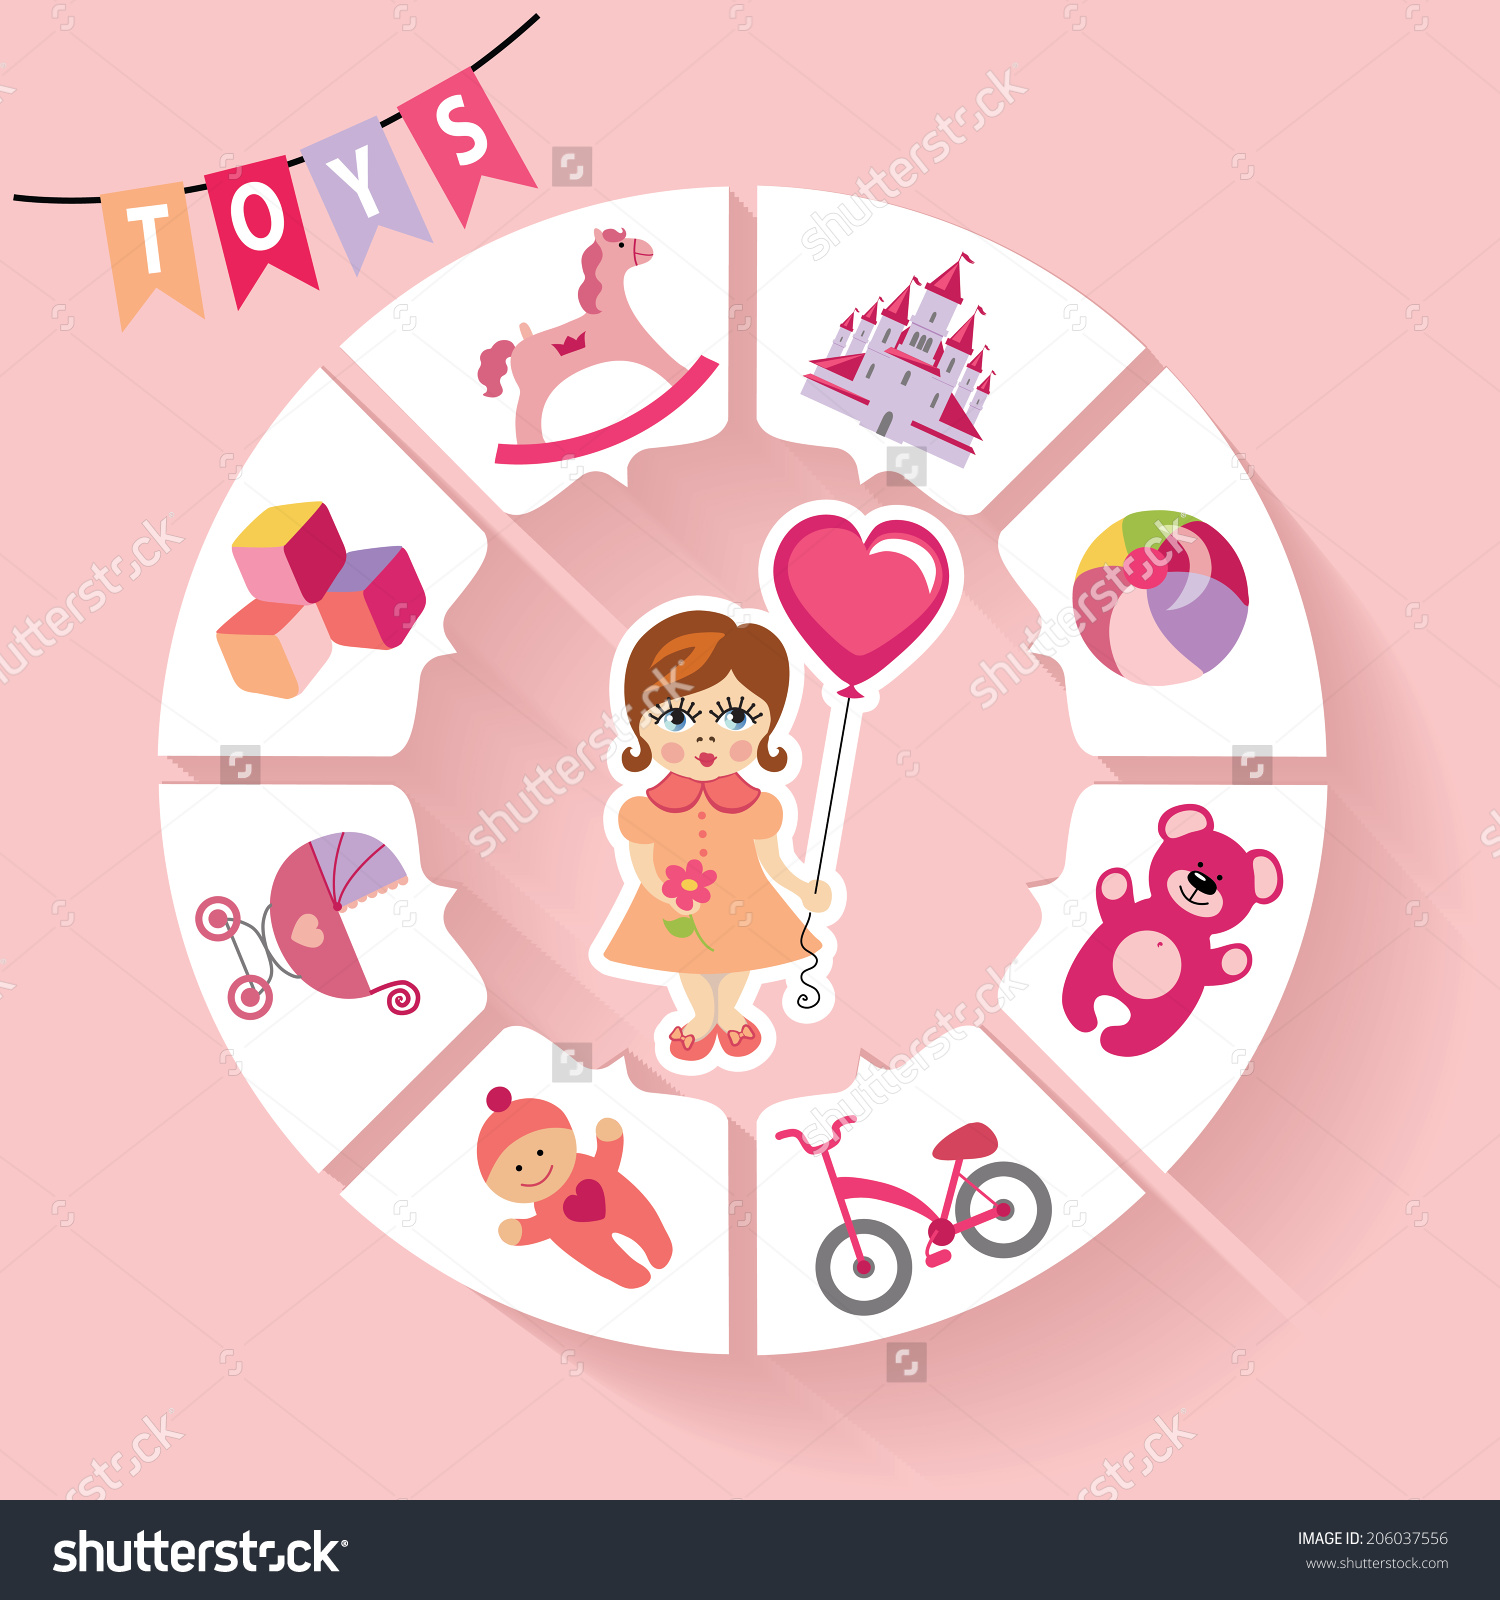 Baby girl clipart cimple freeuse download Cute Children Toys Infographic Simple Flat Stock Vector 206037556 ... freeuse download